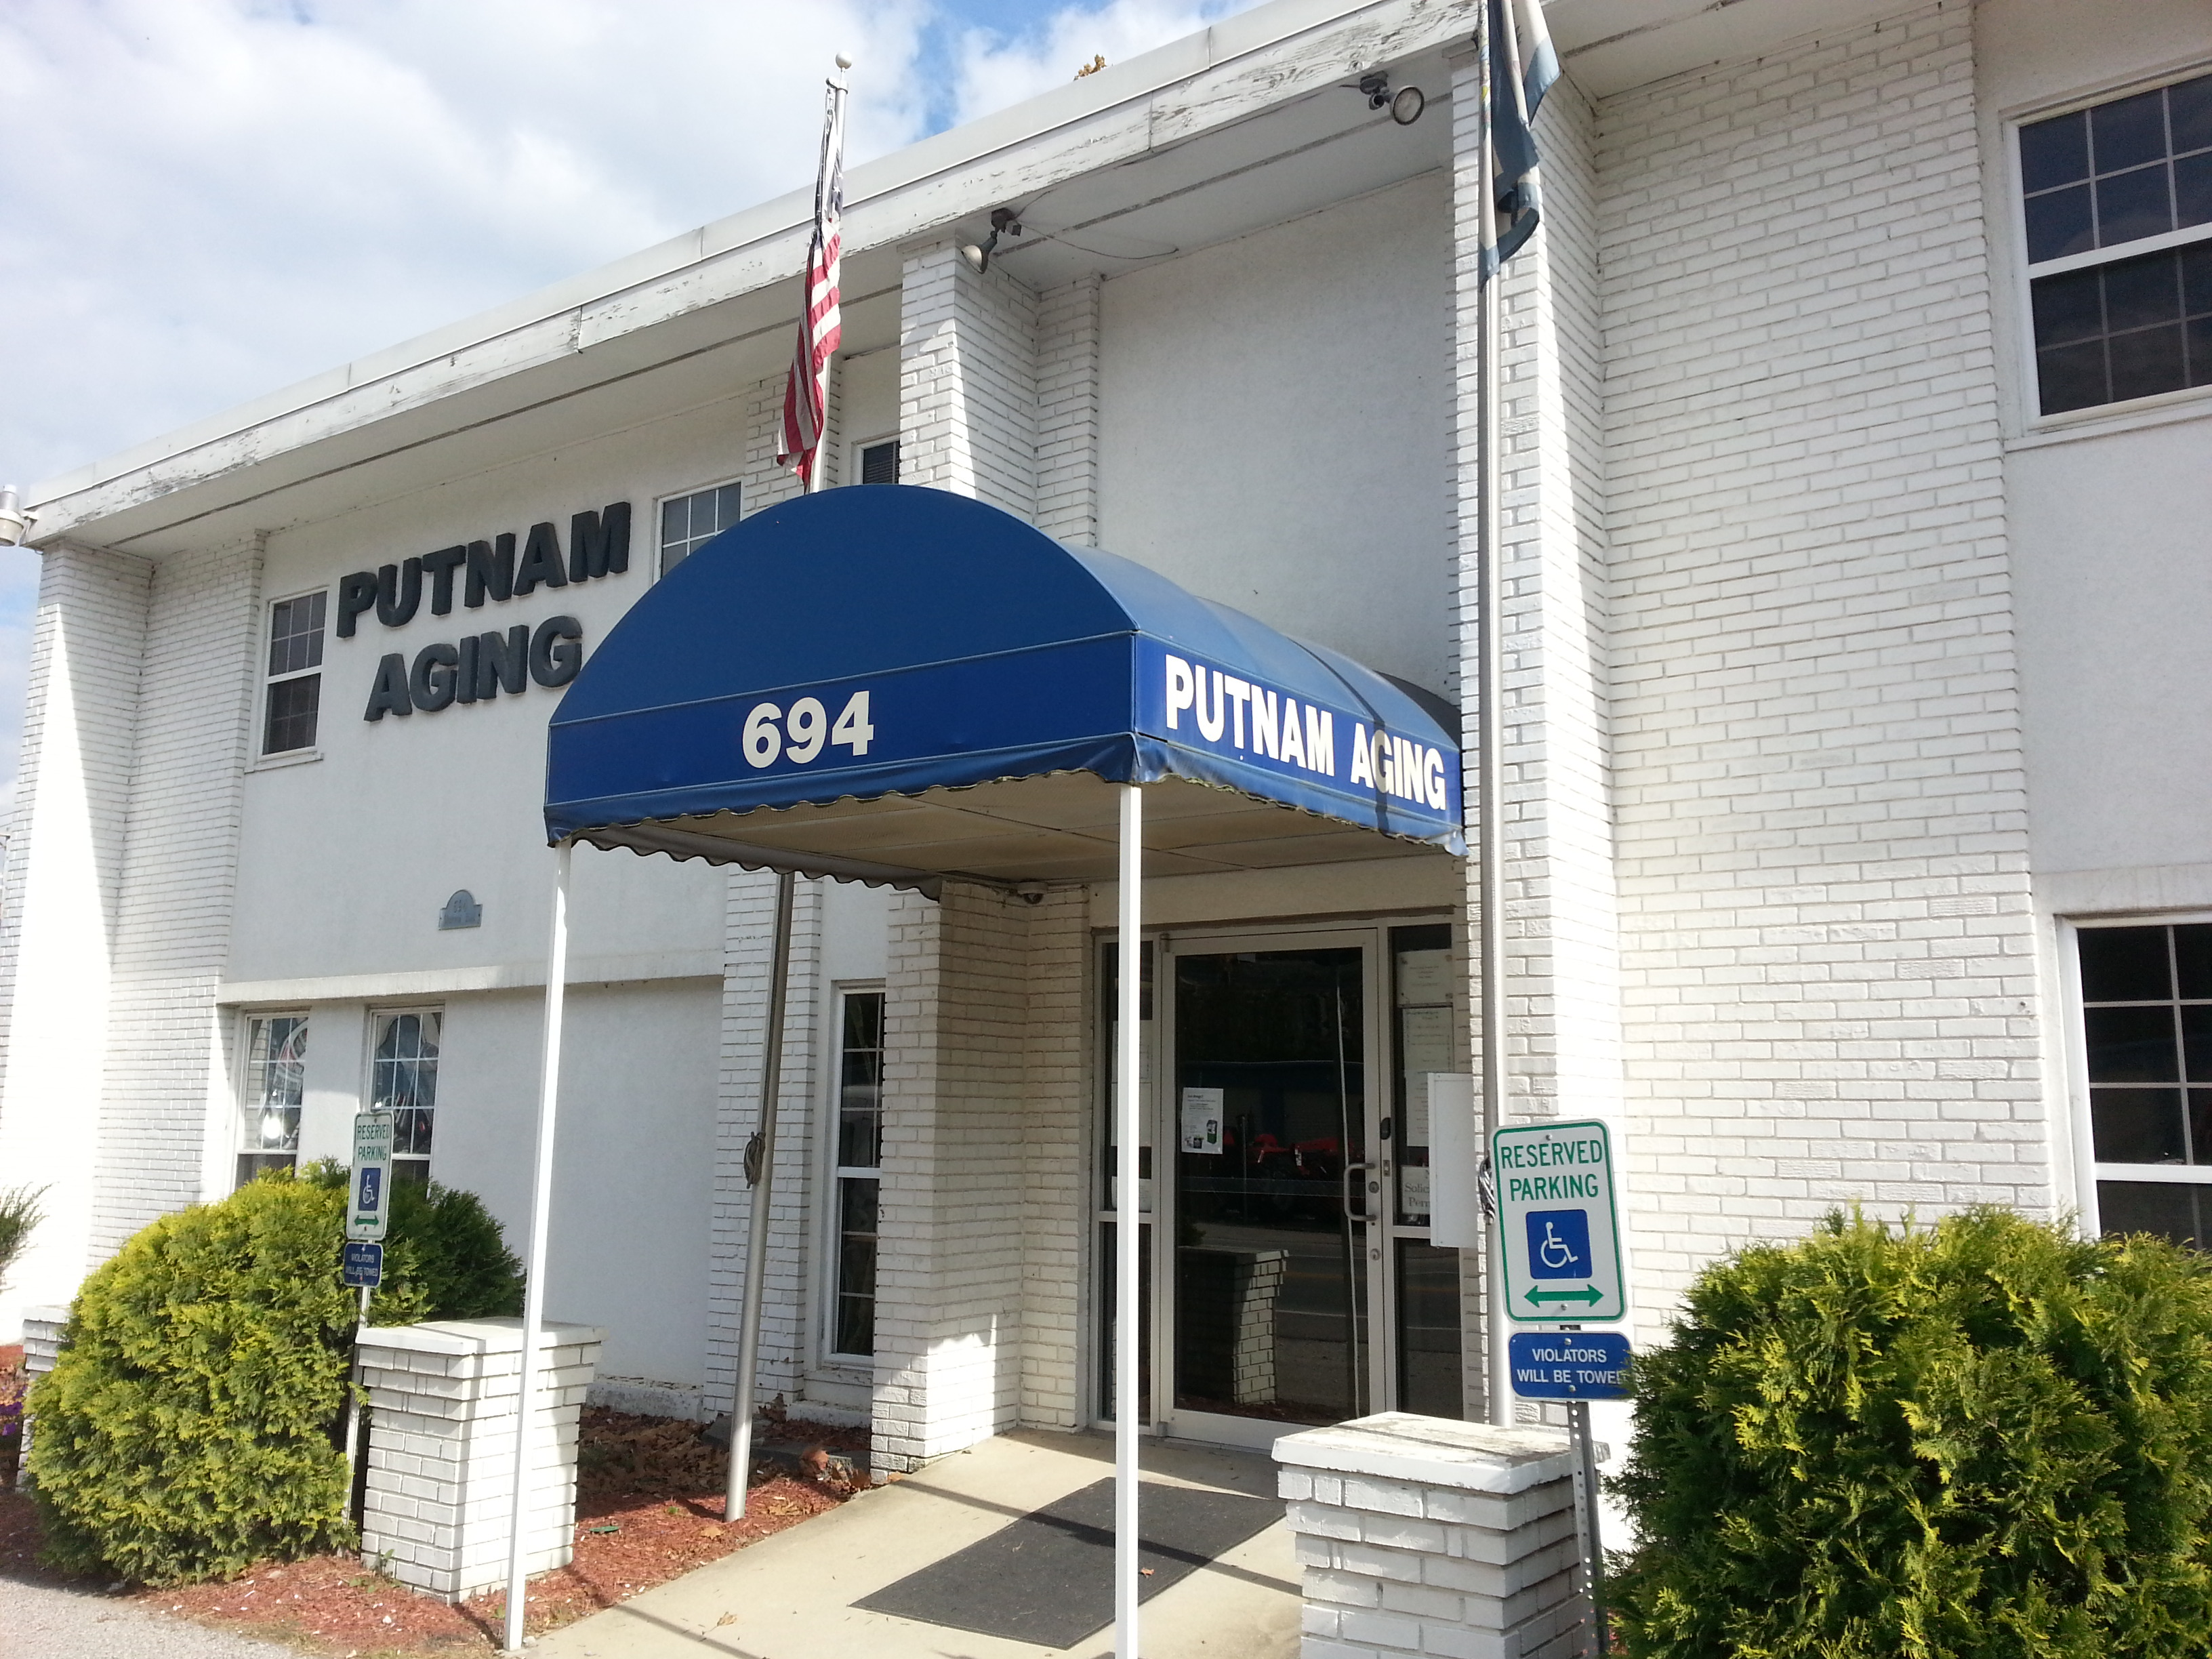 About Us | Putnam County Aging Program